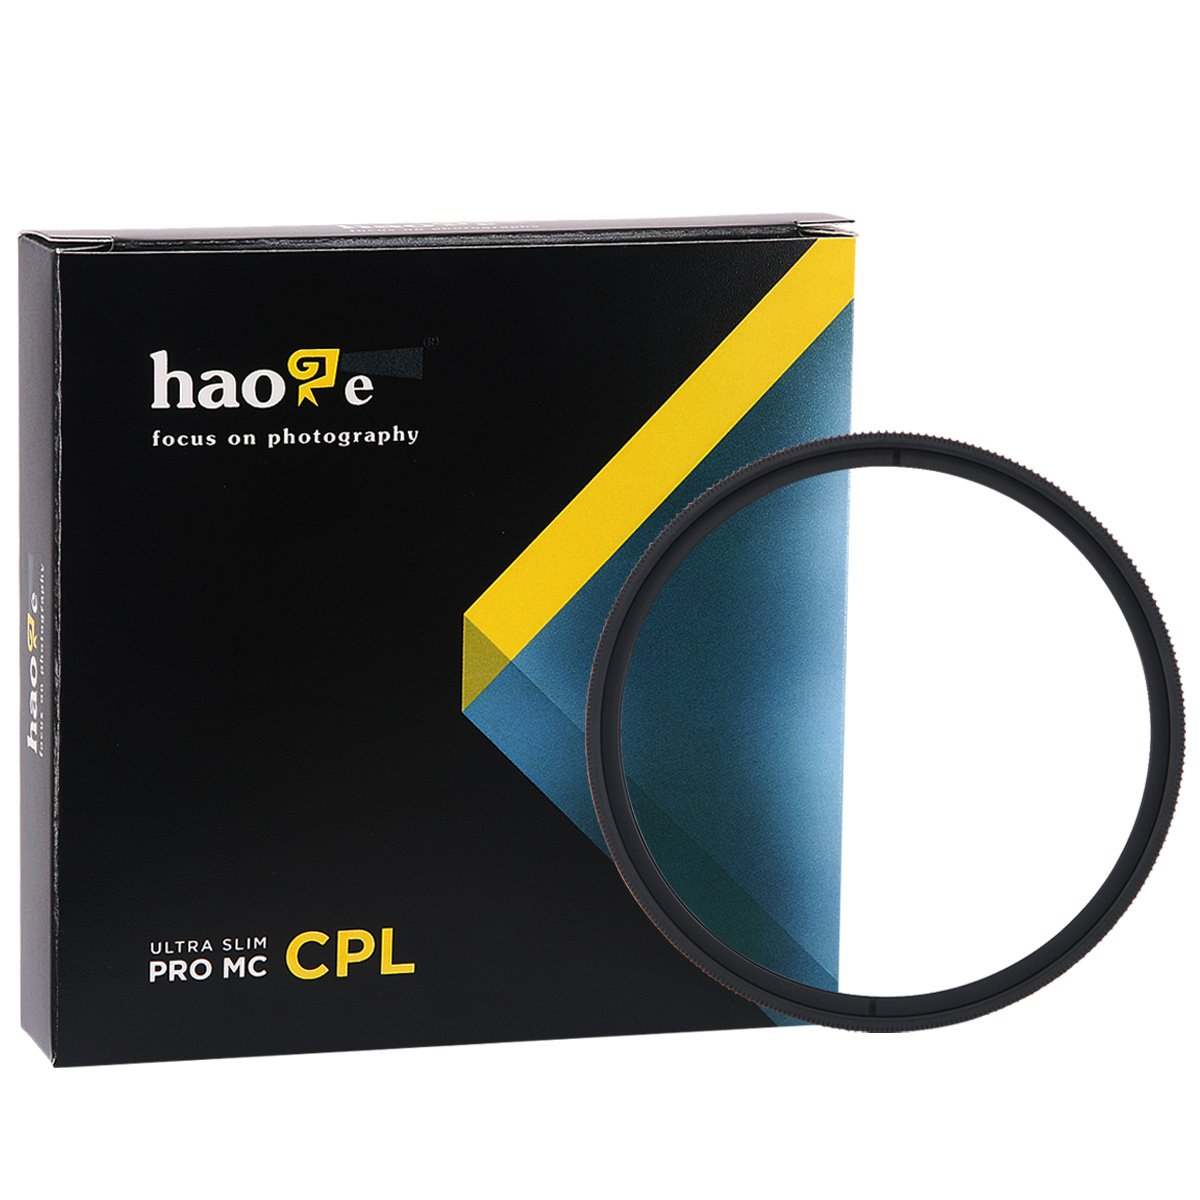 Haoge 40.5mm MC CPL Multicoated Circular Polarizer Polarizing Lens Filter for Sony Alpha a6500 a6300 a6000 a5000 a5100 NEX 5 6 Mirrorless Camera SLR with 16-50mm SELP1650 Lens by Haoge